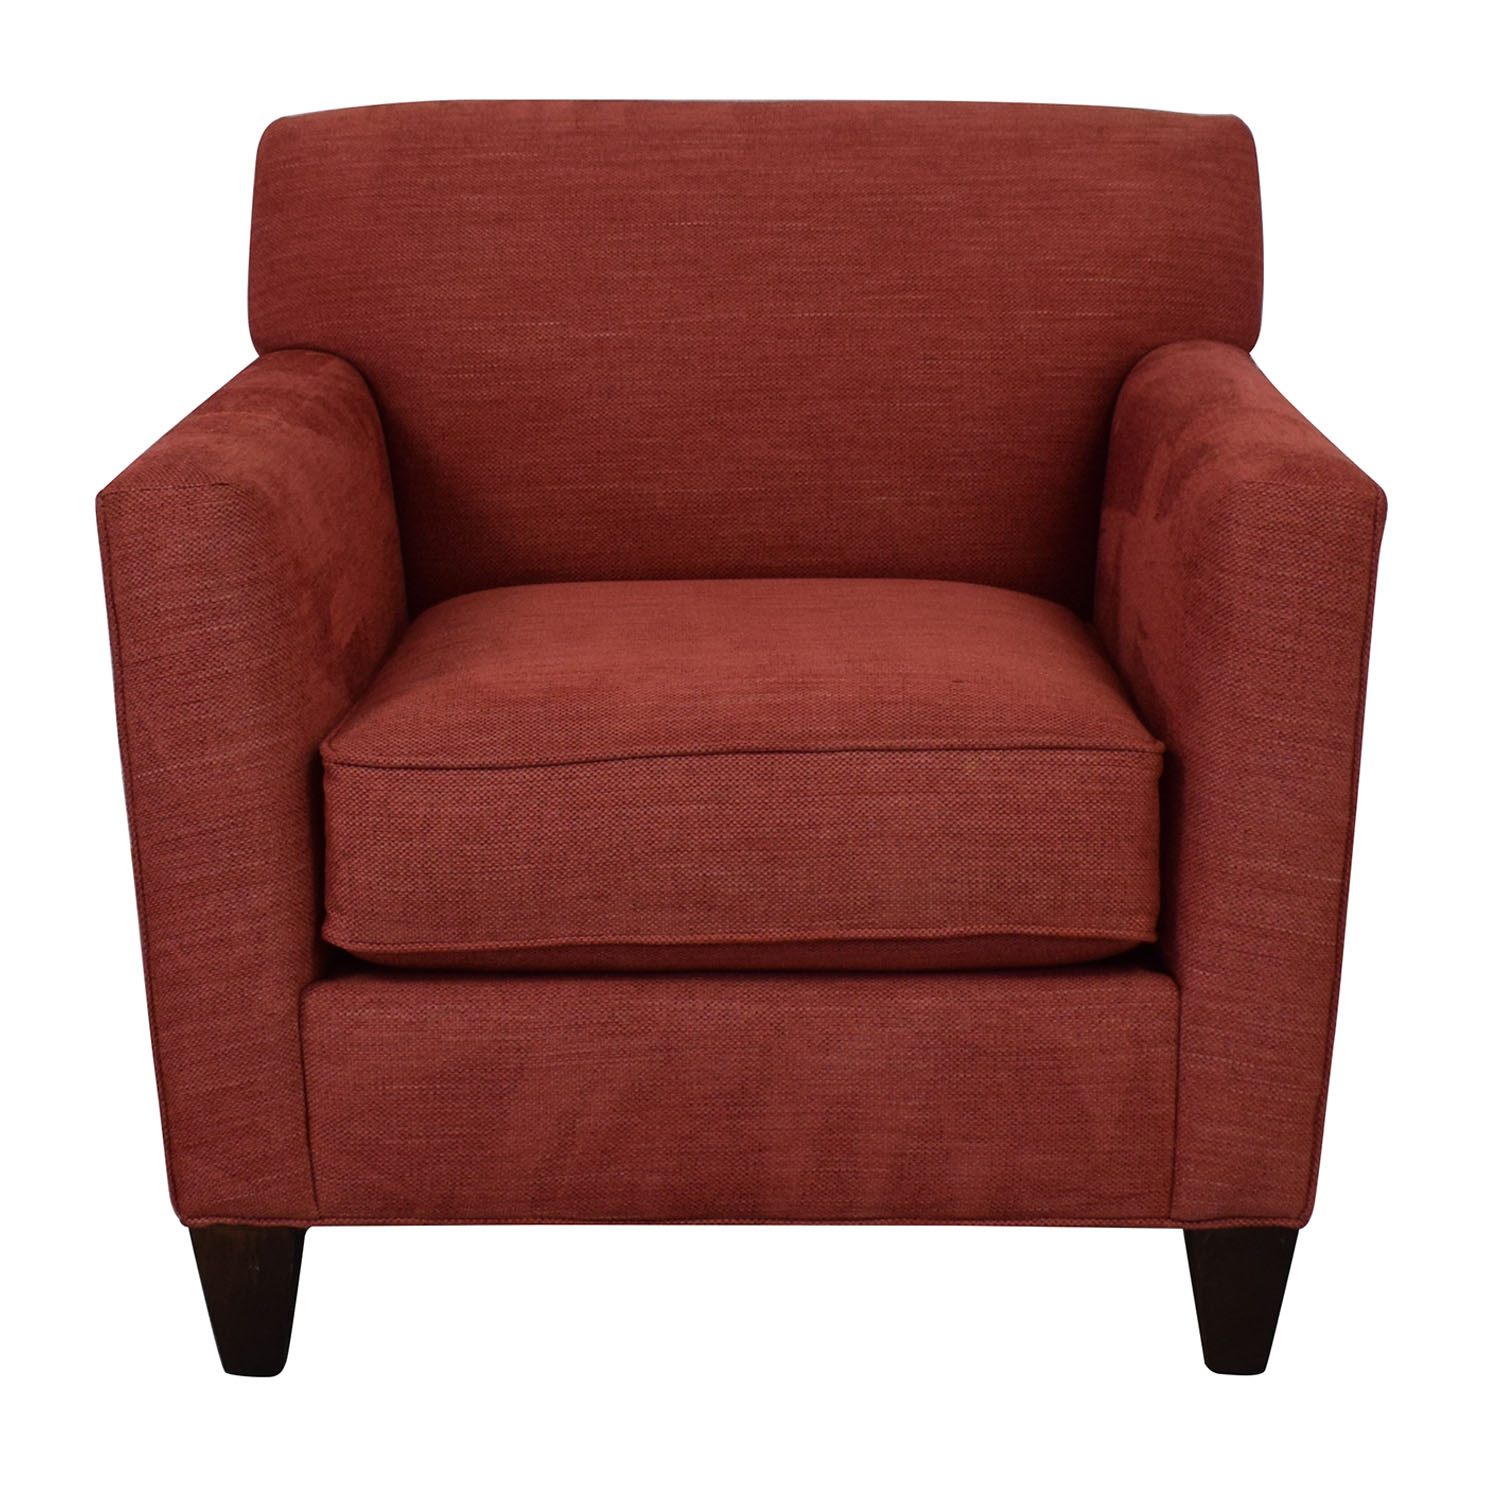 Crate & Barrel Crate & Barrel Hennessy Arm Chair red